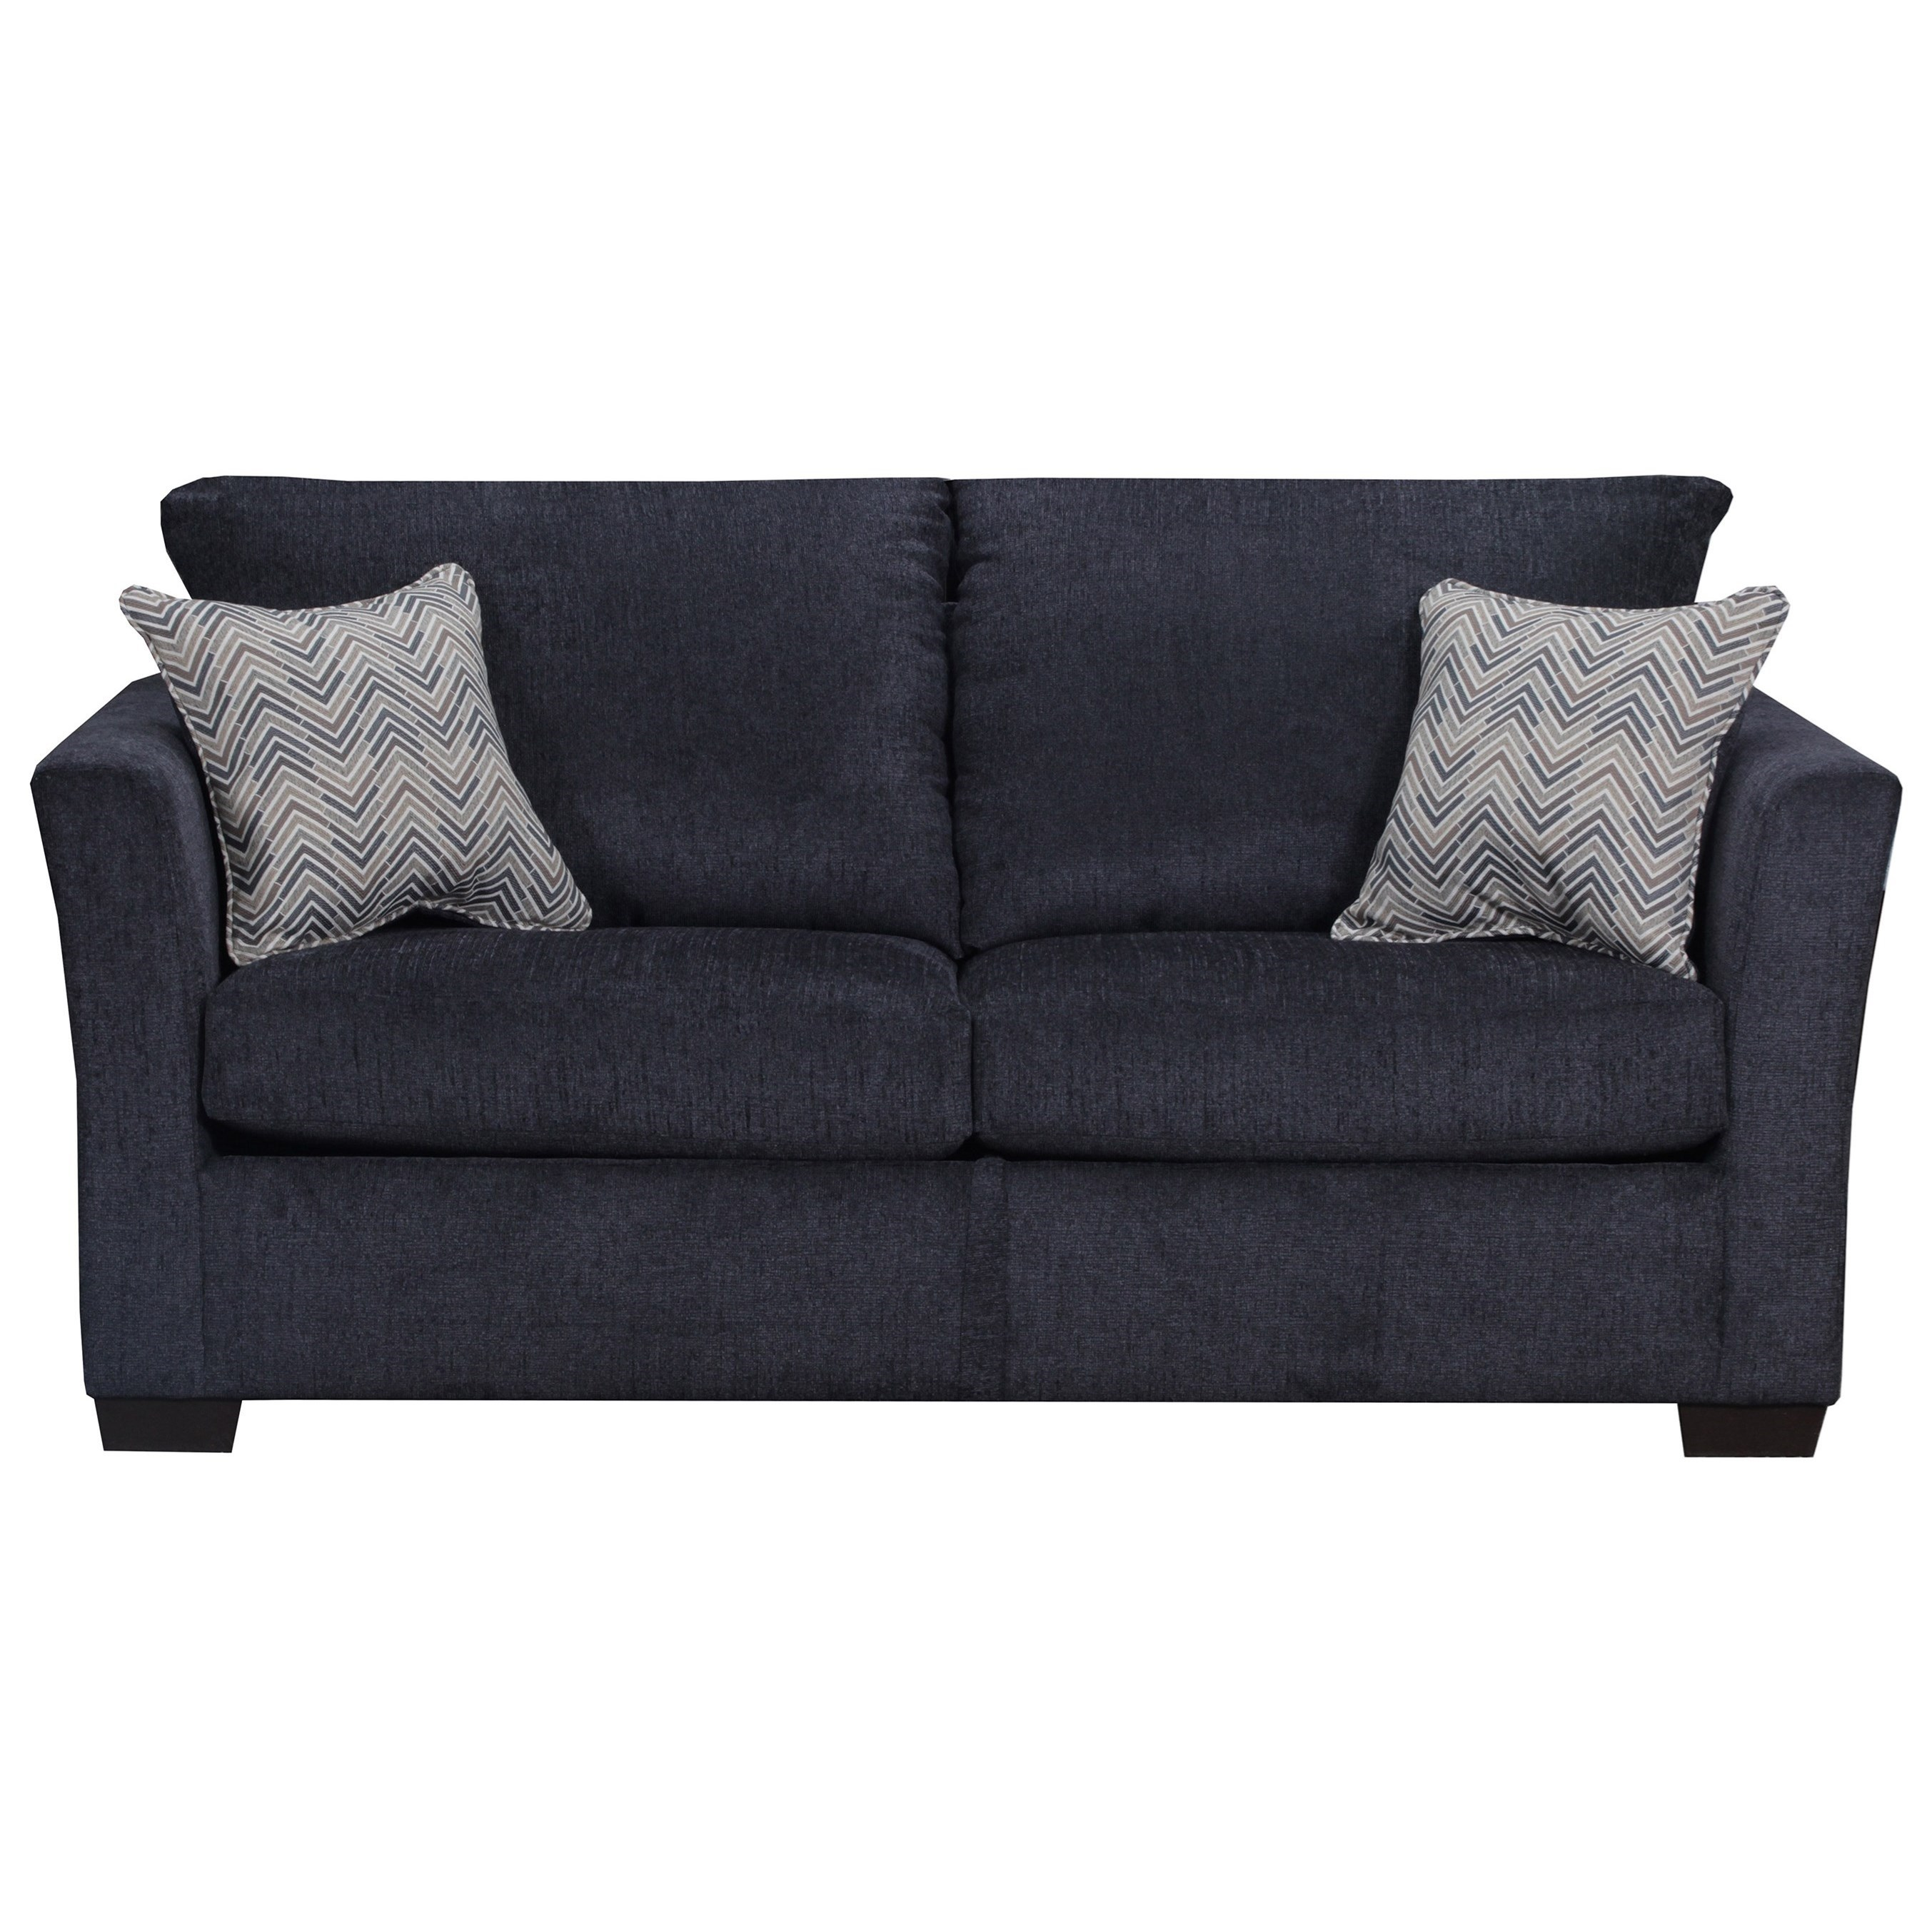 4206 Transitional Two Cushion Sofa by Lane at Powell's Furniture and Mattress